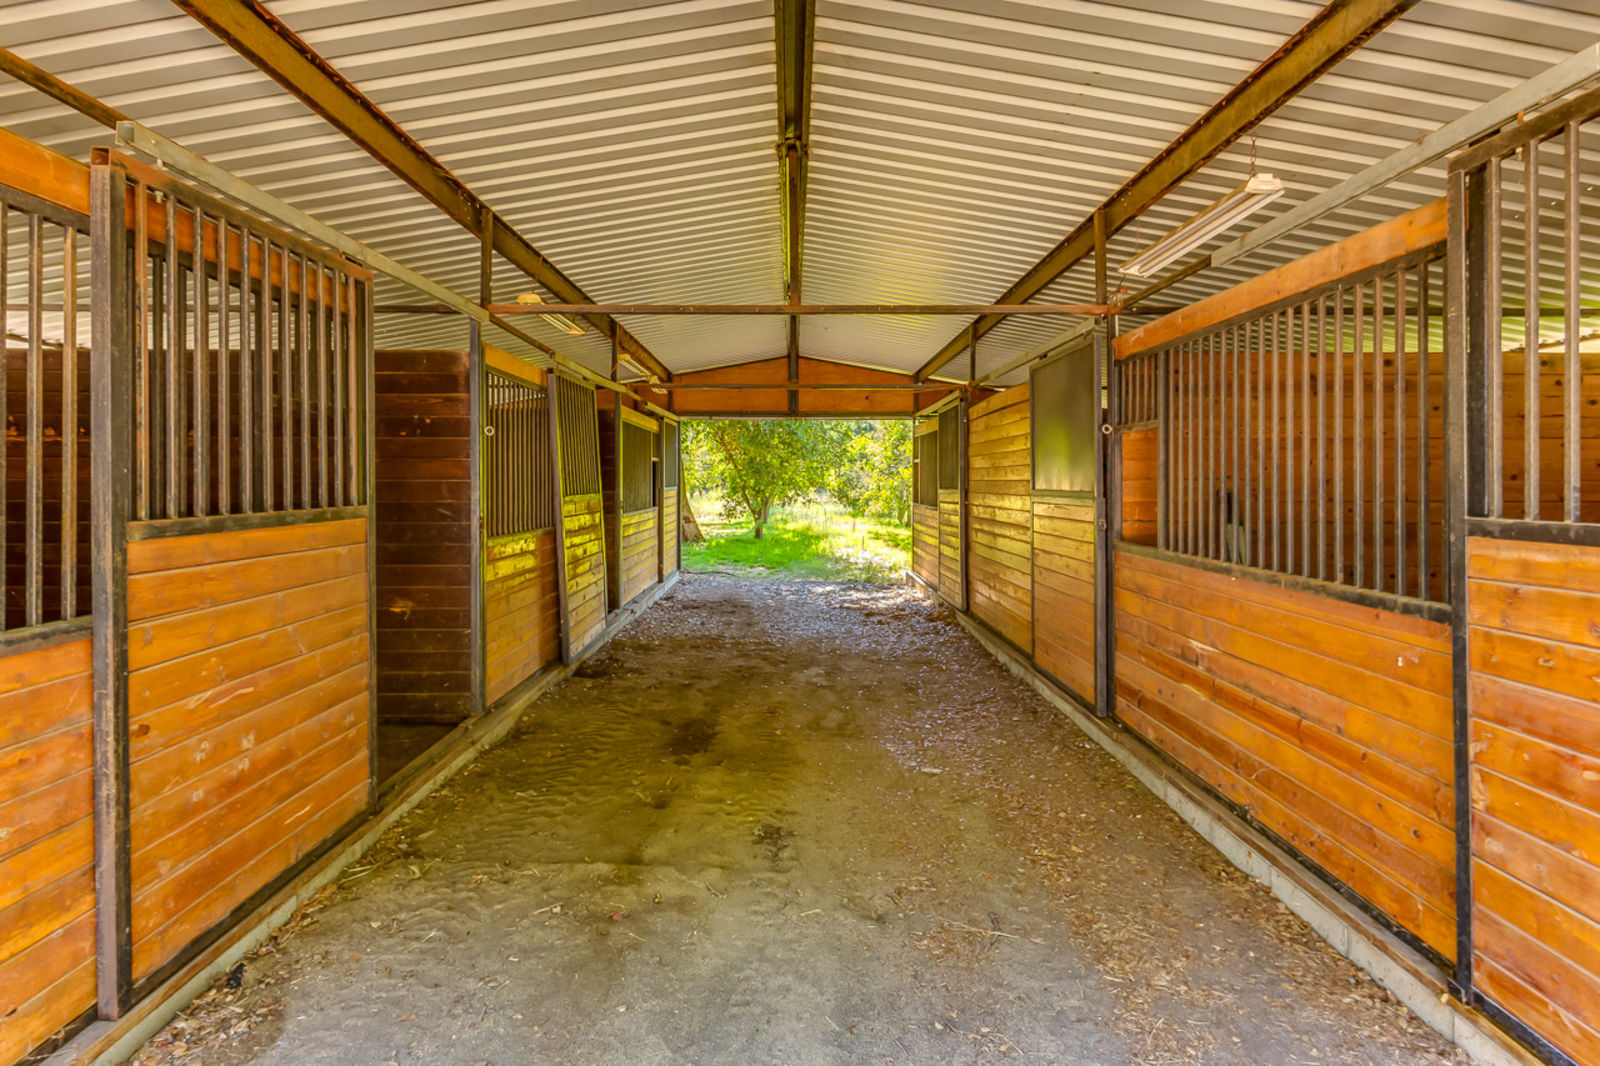 Valley Center CA adobe home for sale includes this 5 stall cedar horse stable